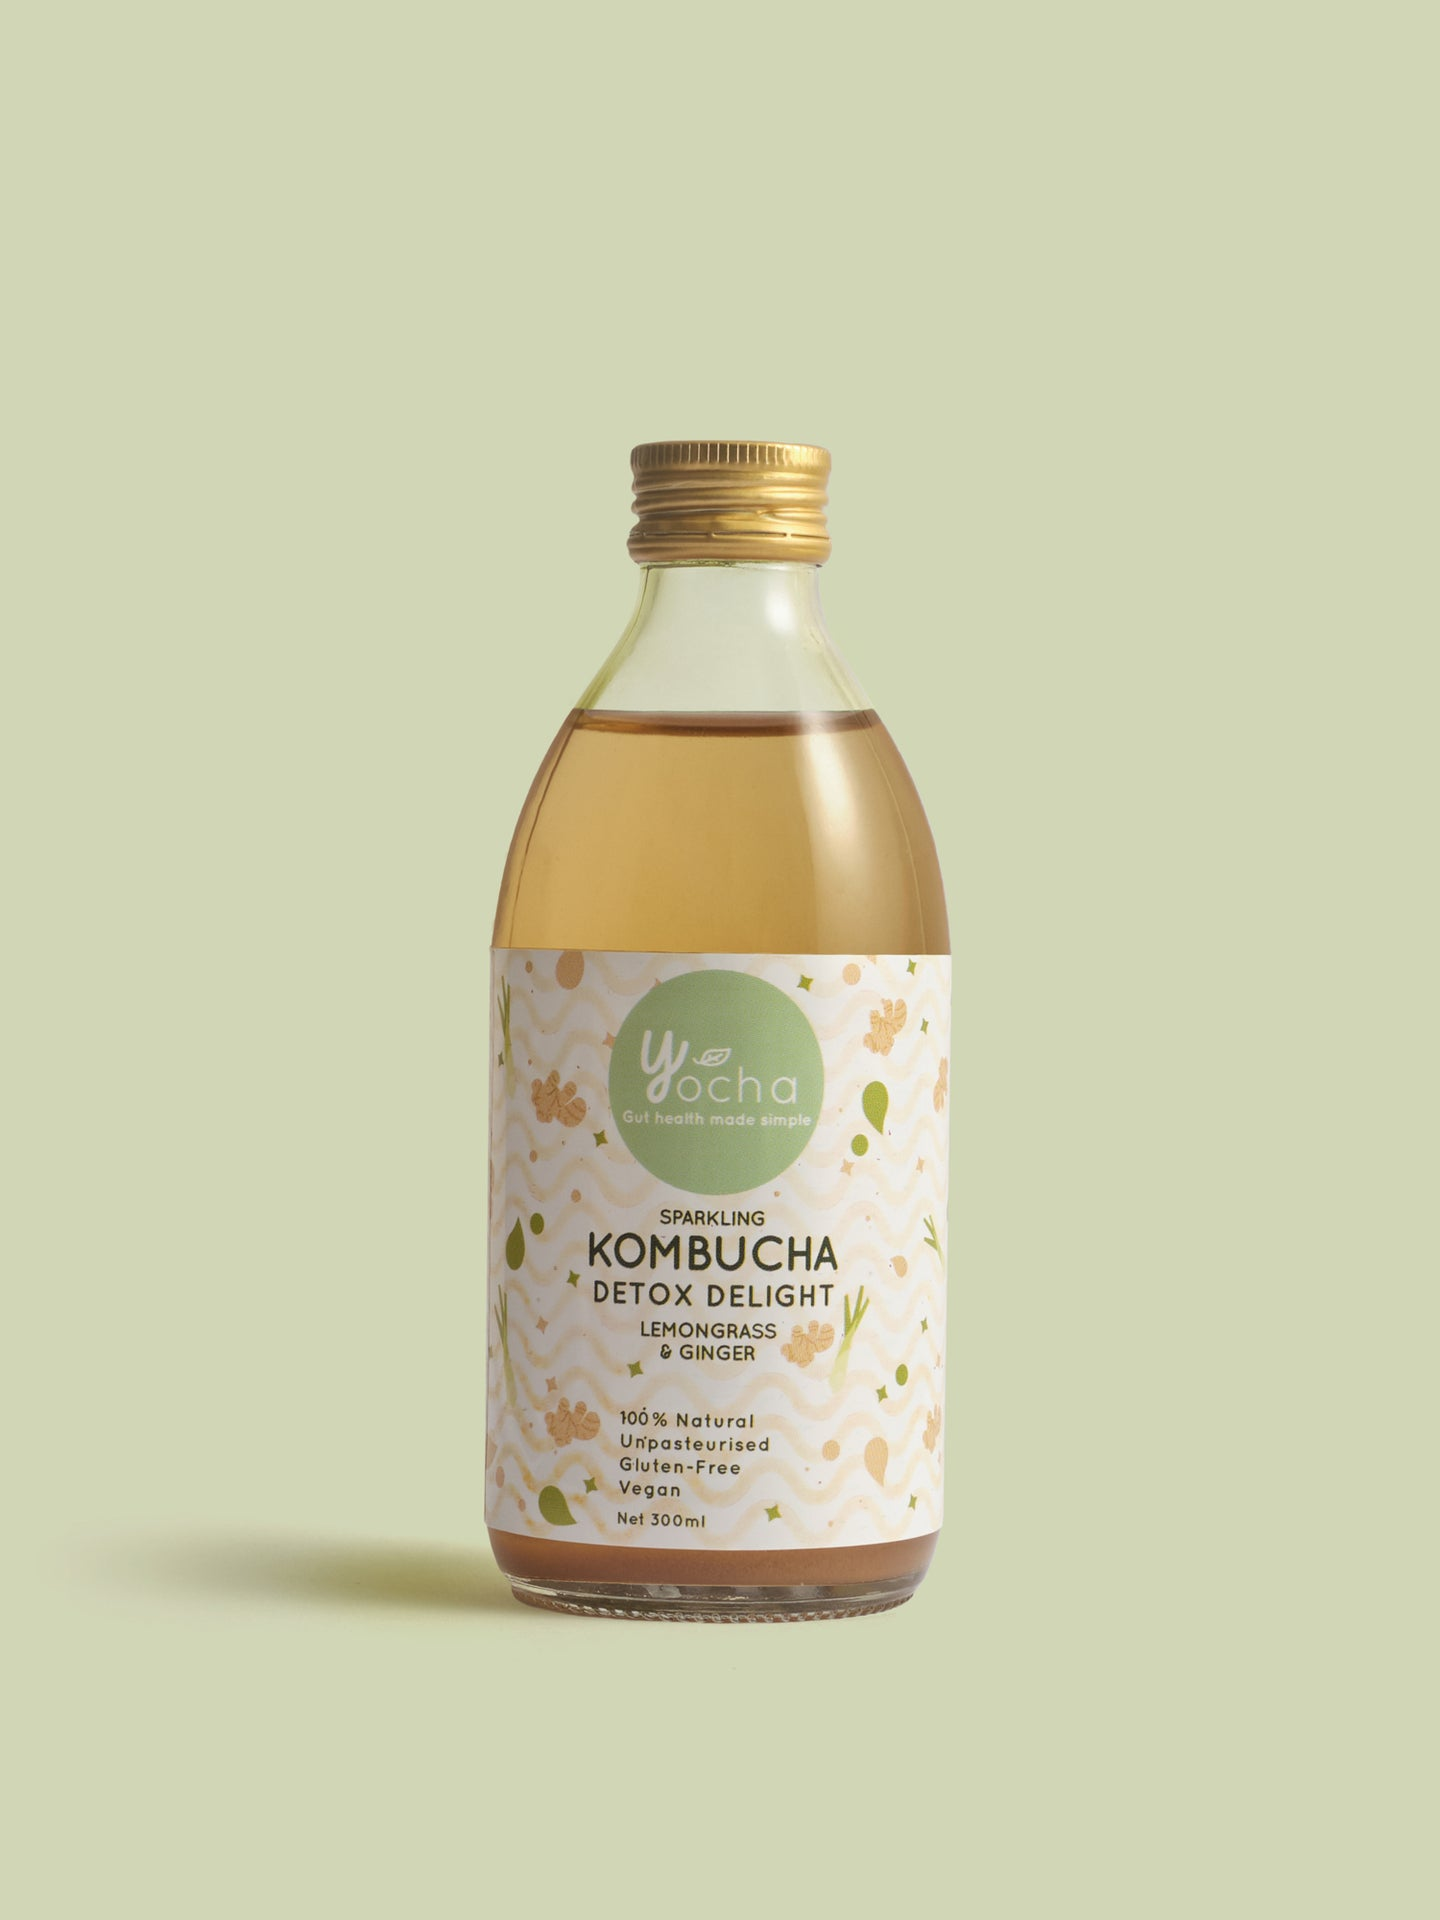 Detox Delight: Lemongrass & Ginger 300ml